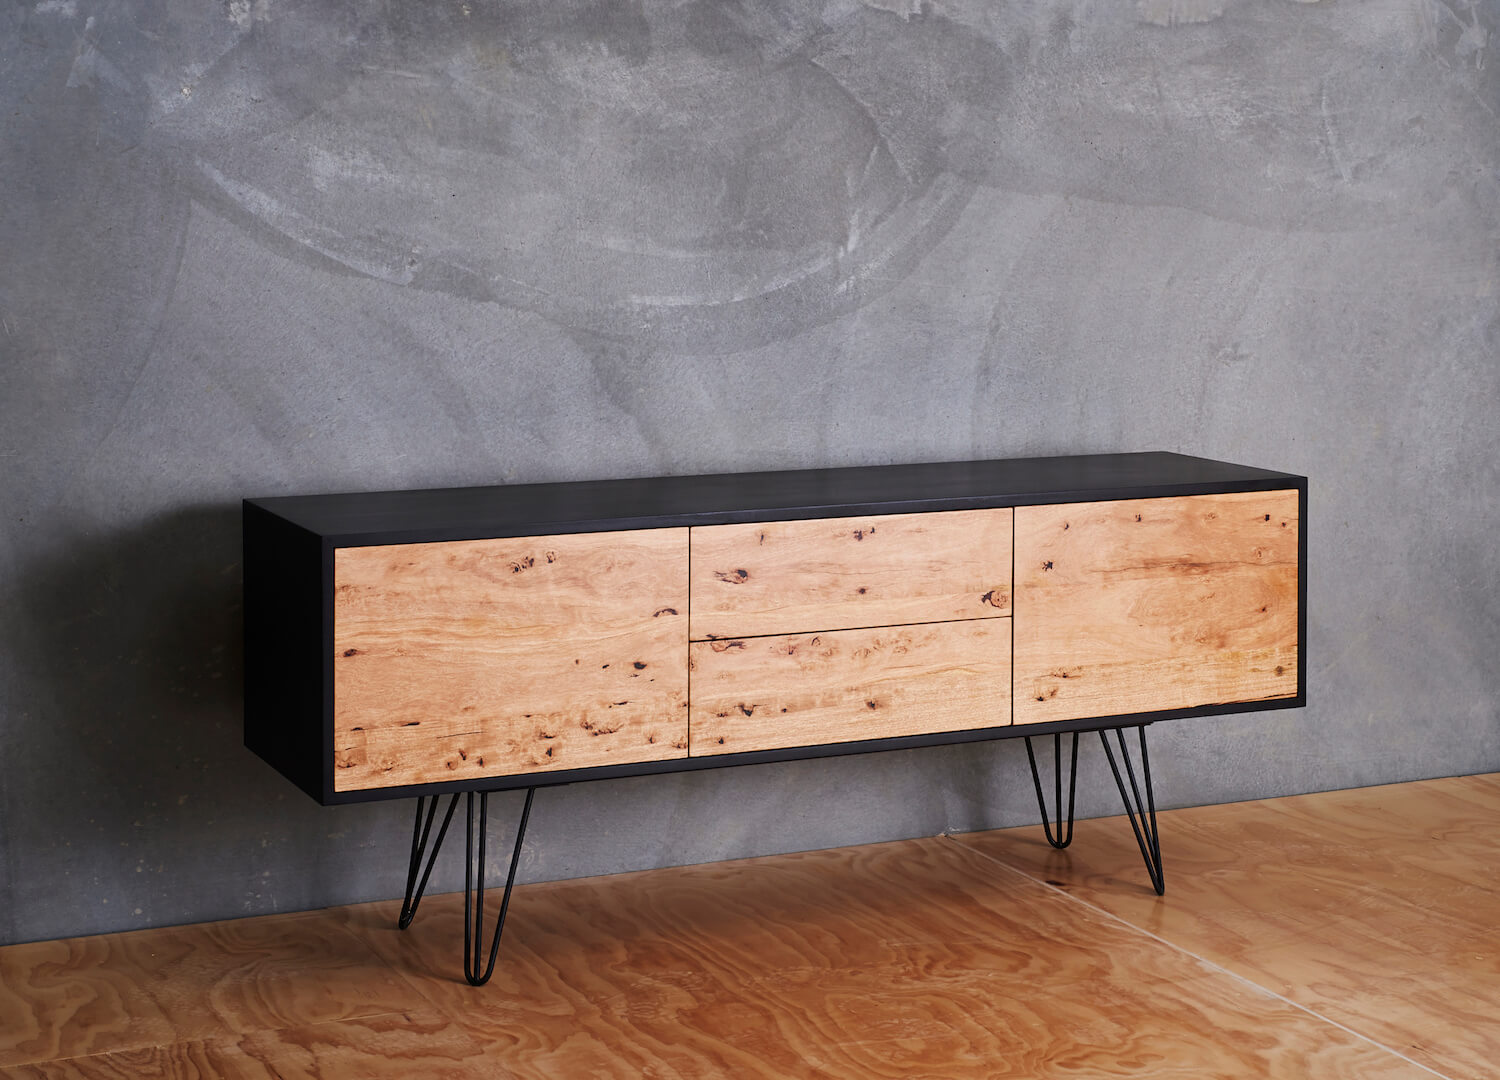 est living denfair discovery interview fred kimel auld design delirium sideboard